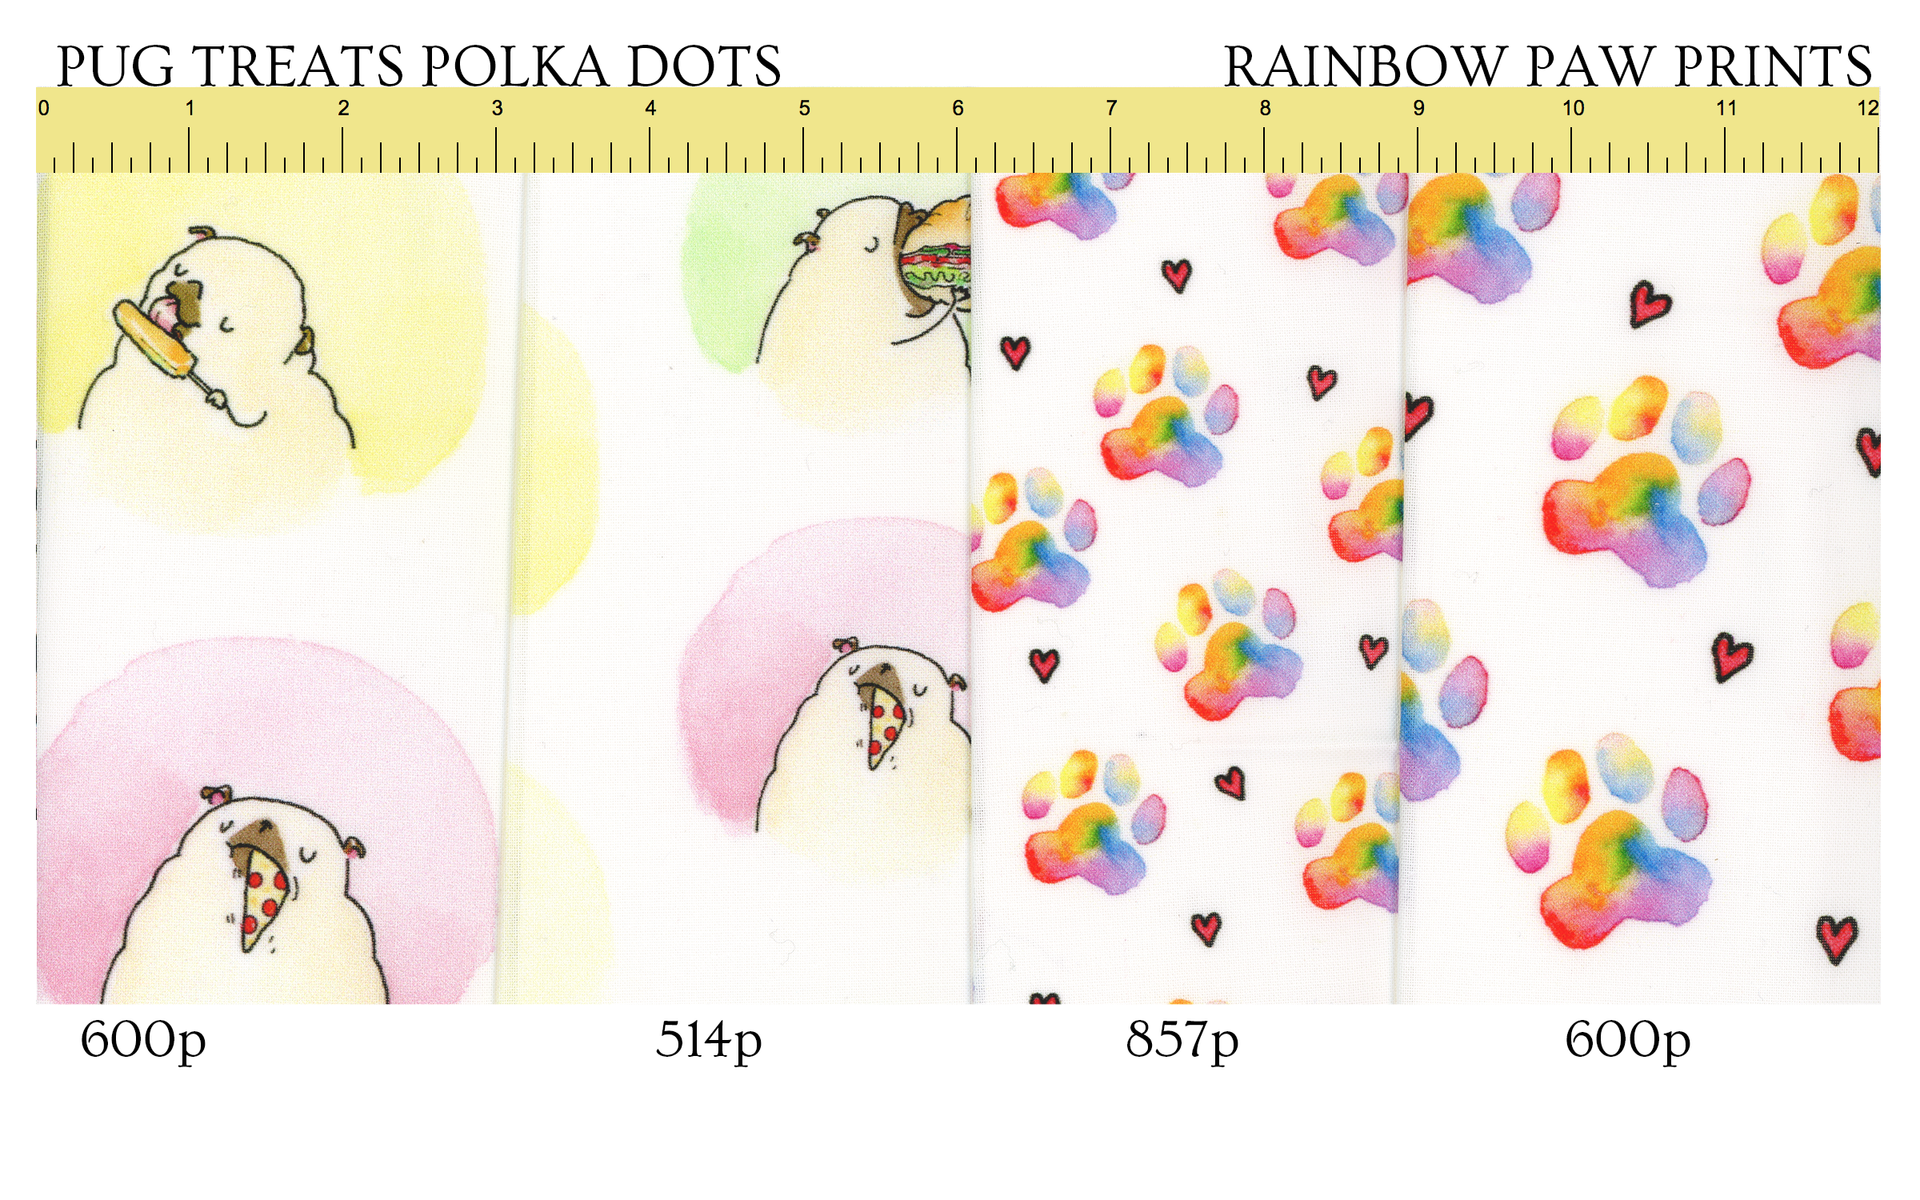 Follow this link to get Pug Treats/Rainbow Pawprints patterns on Spoonflower!